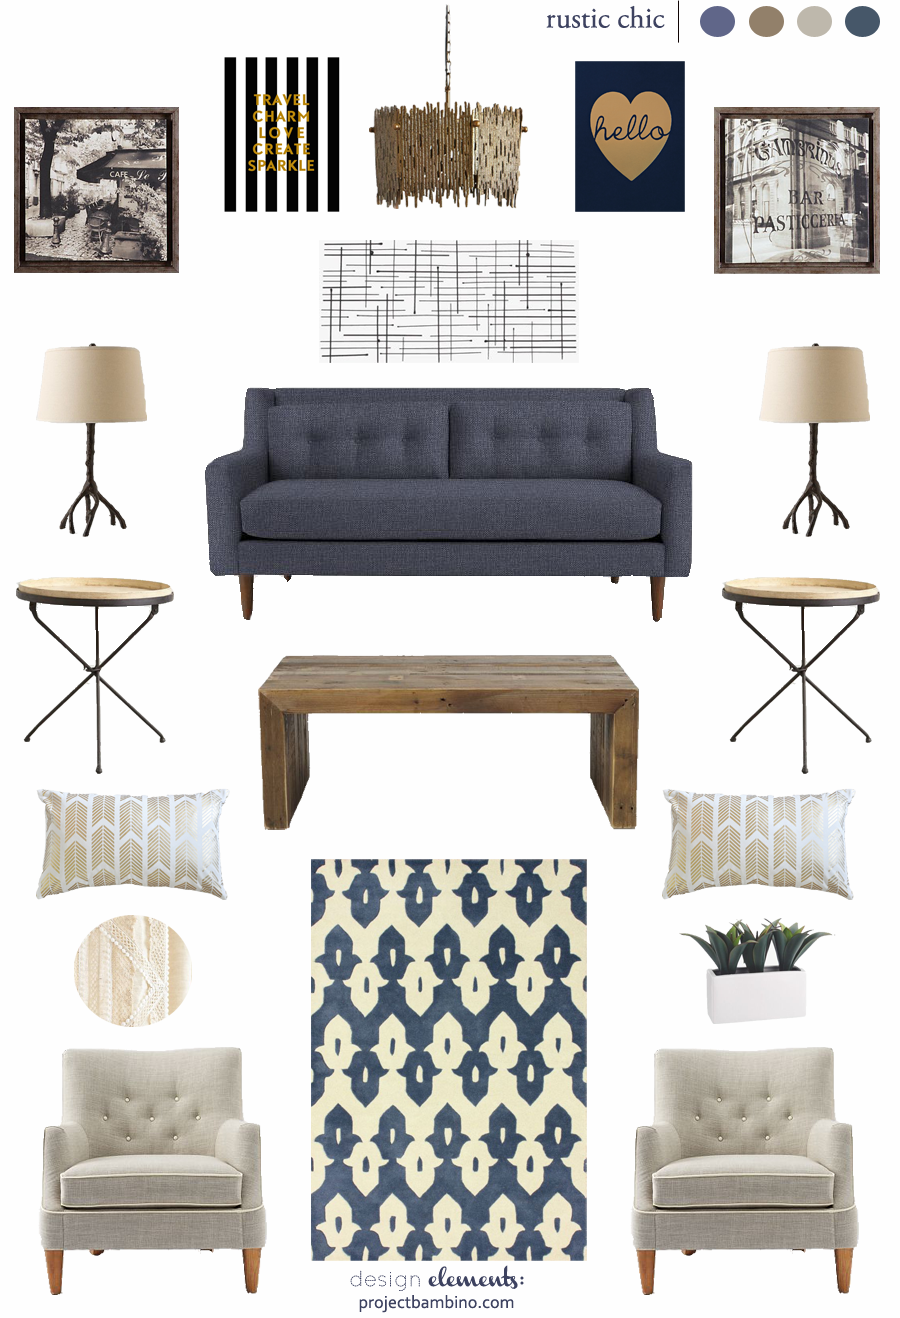 I Love Everything Except The Lighting The Lamps And Light Fixture Are Not My Th Rustic Chic Living Room Chic Living Room Design Living Room Design Inspiration #navy #blue #decor #for #living #room